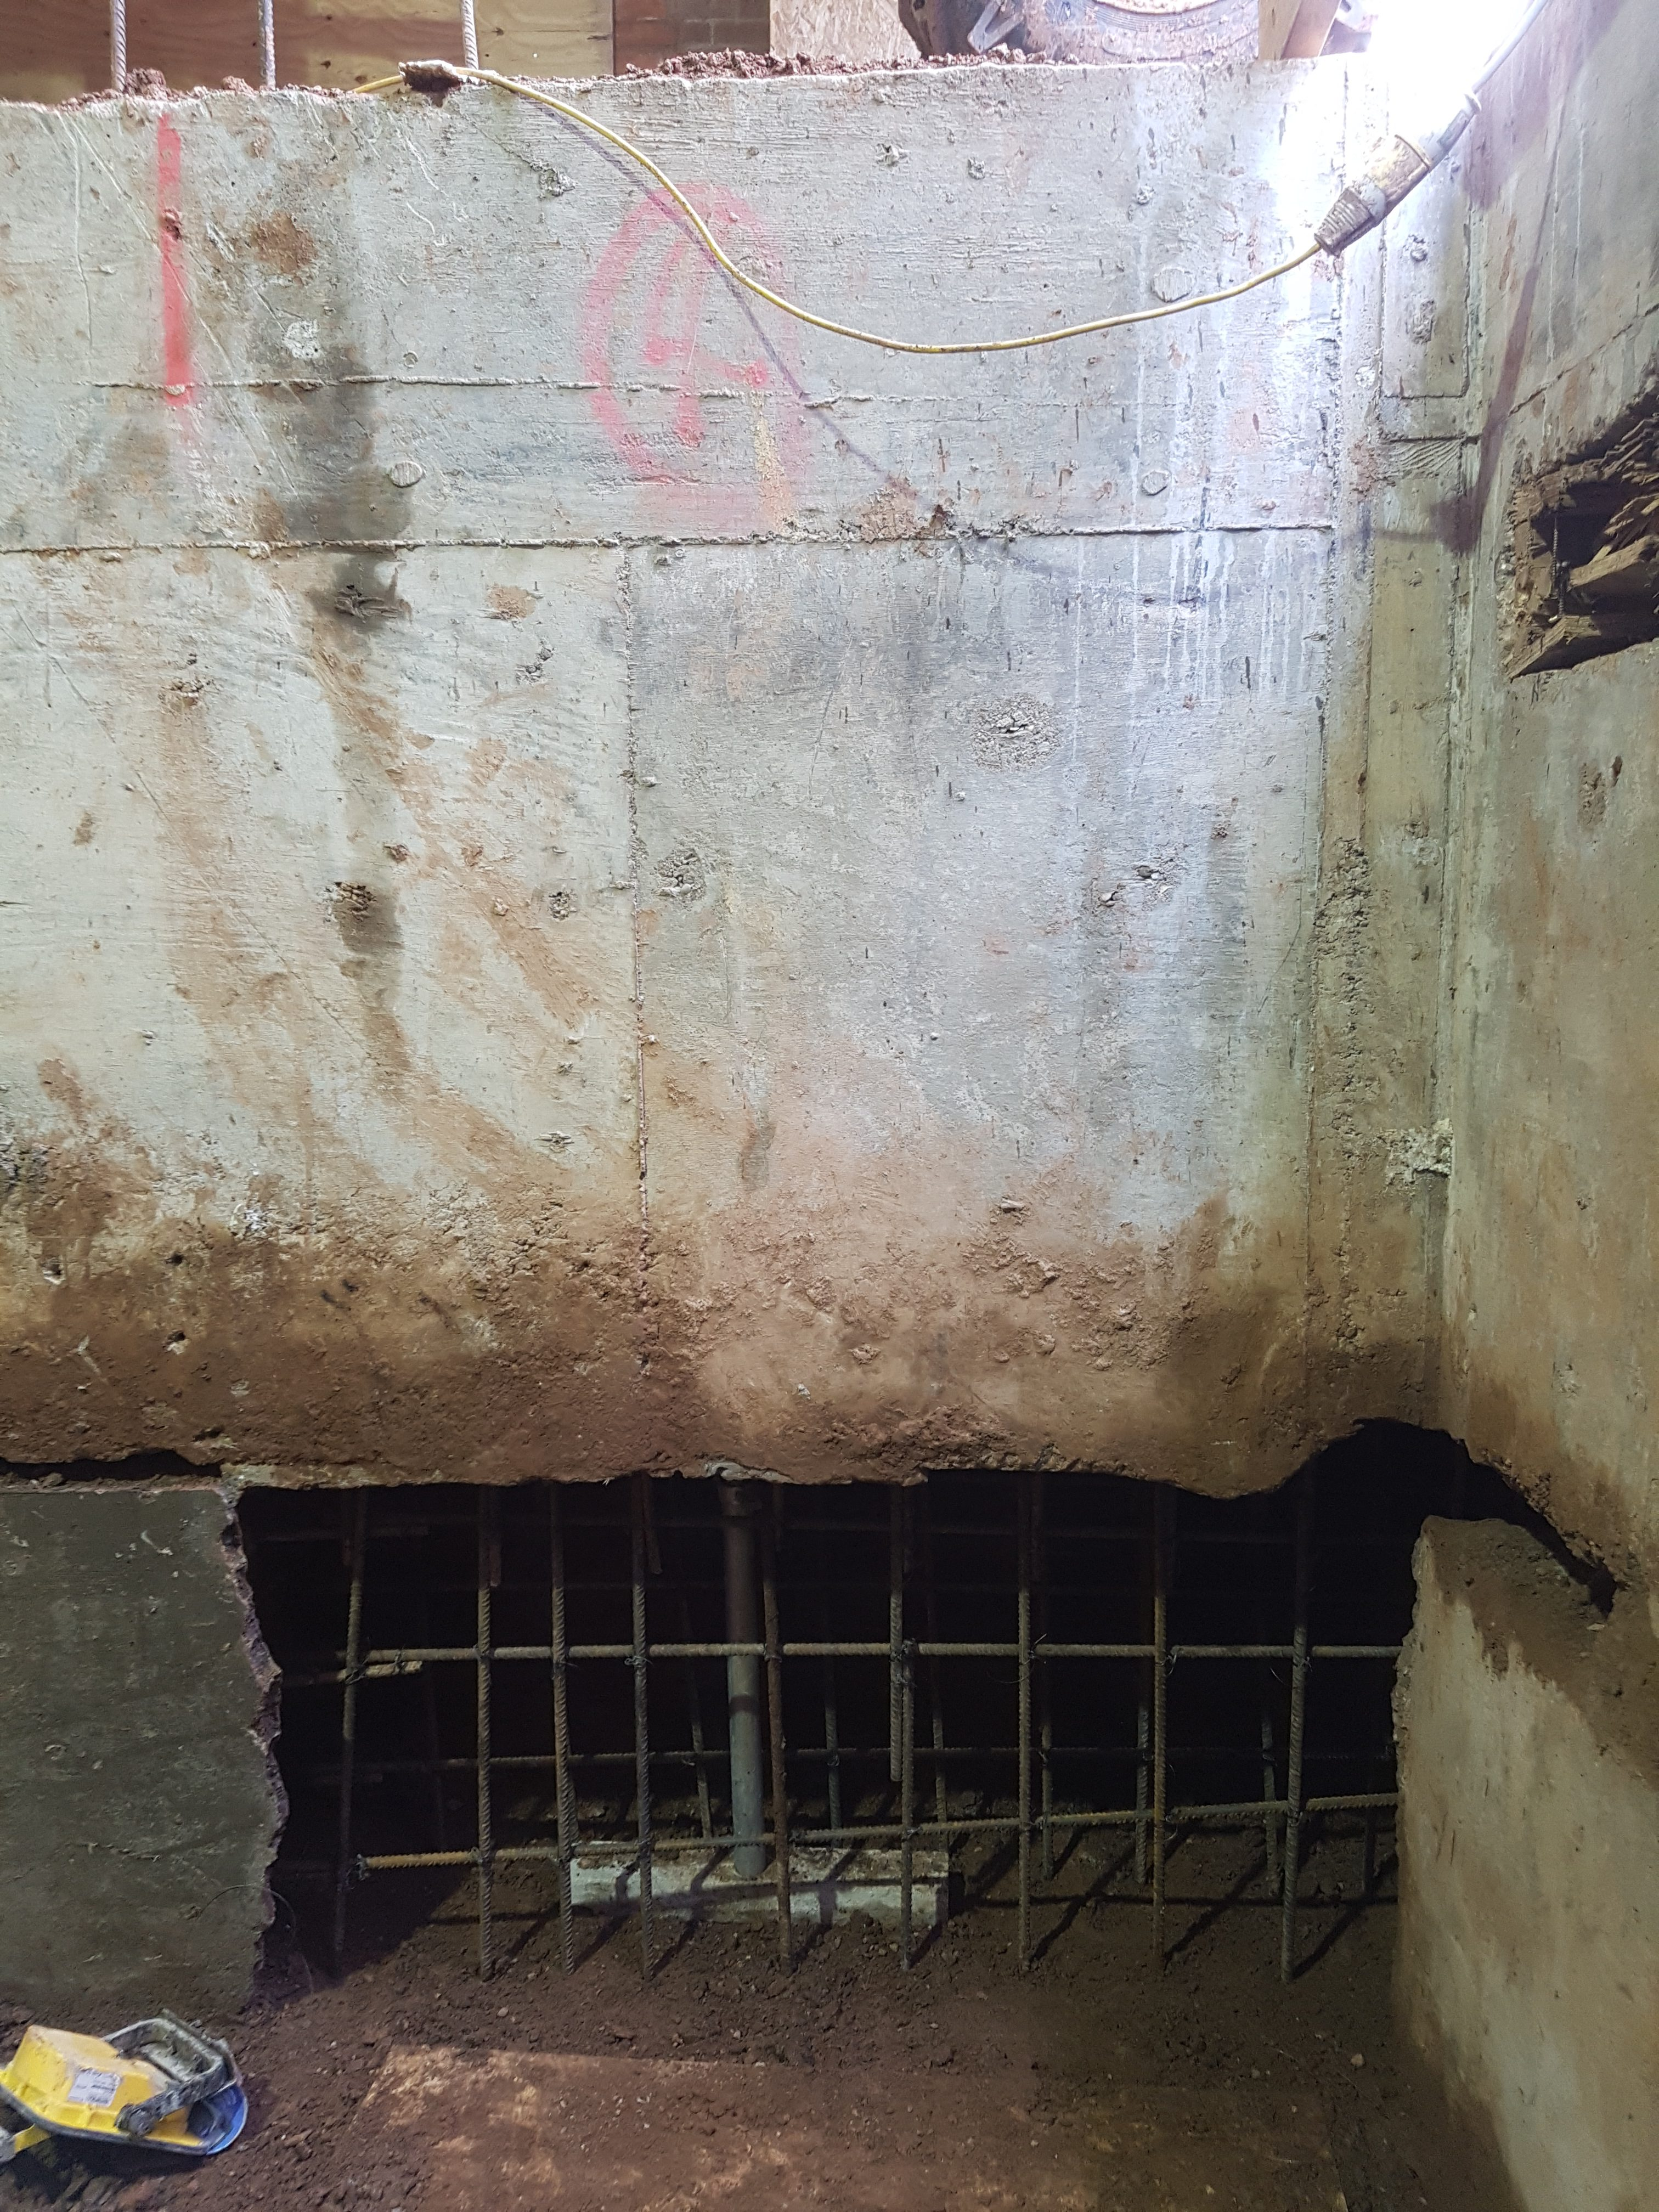 Second layer of underpinning with steel reinforcing